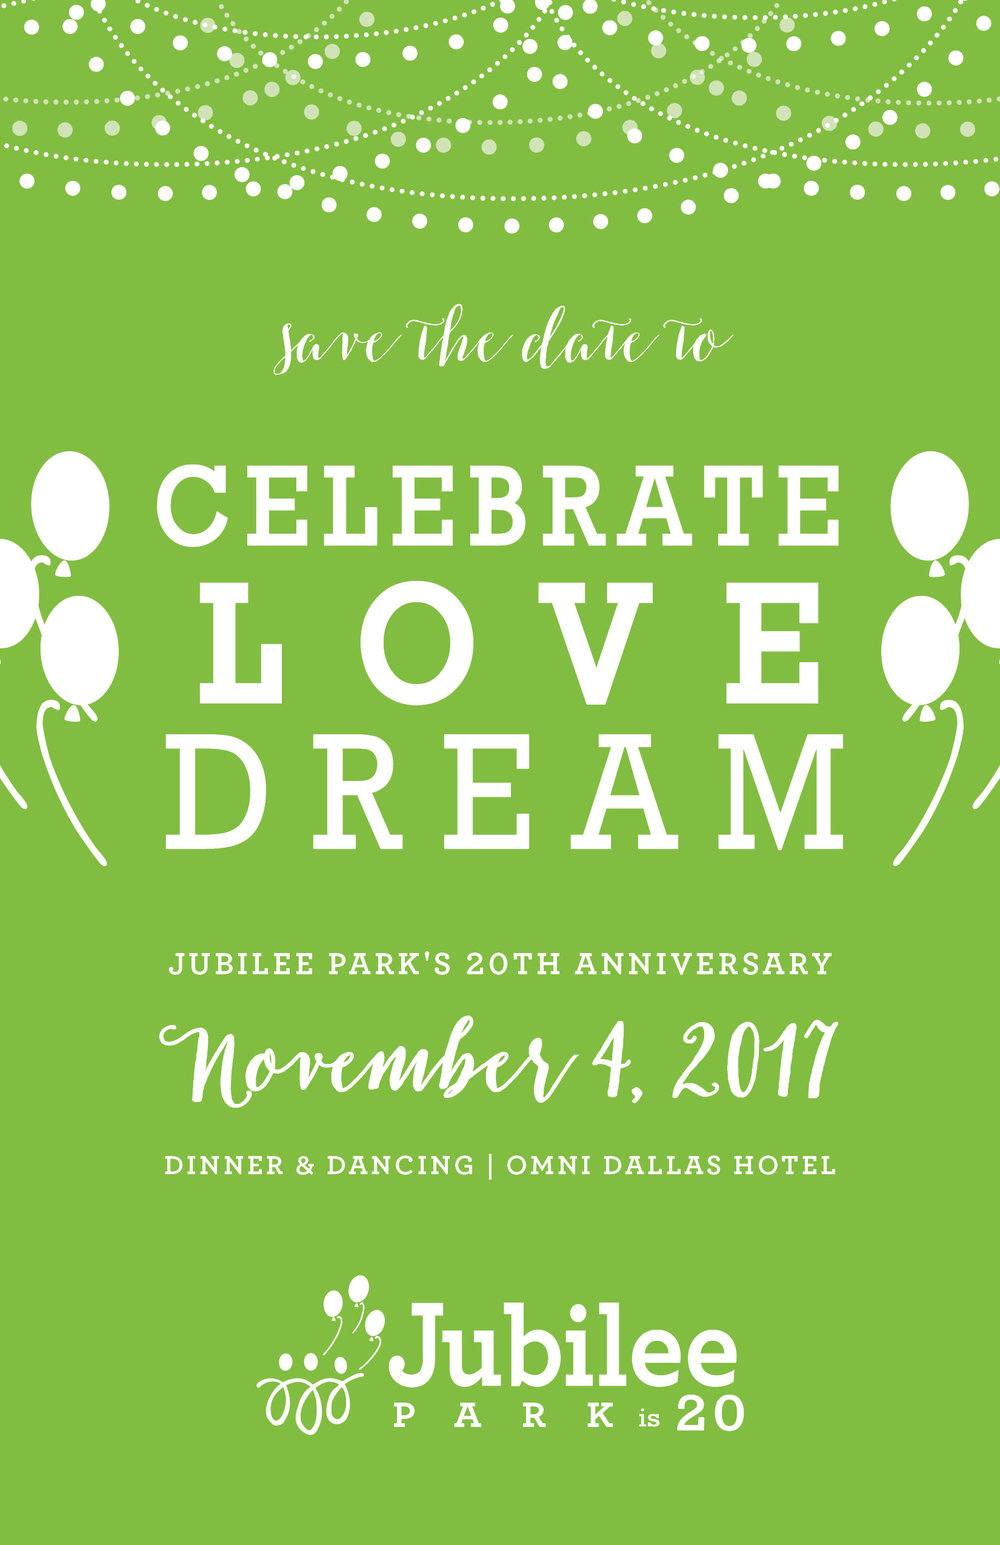 Jubilee 20th Anniversary Gala Save the Date.jpg